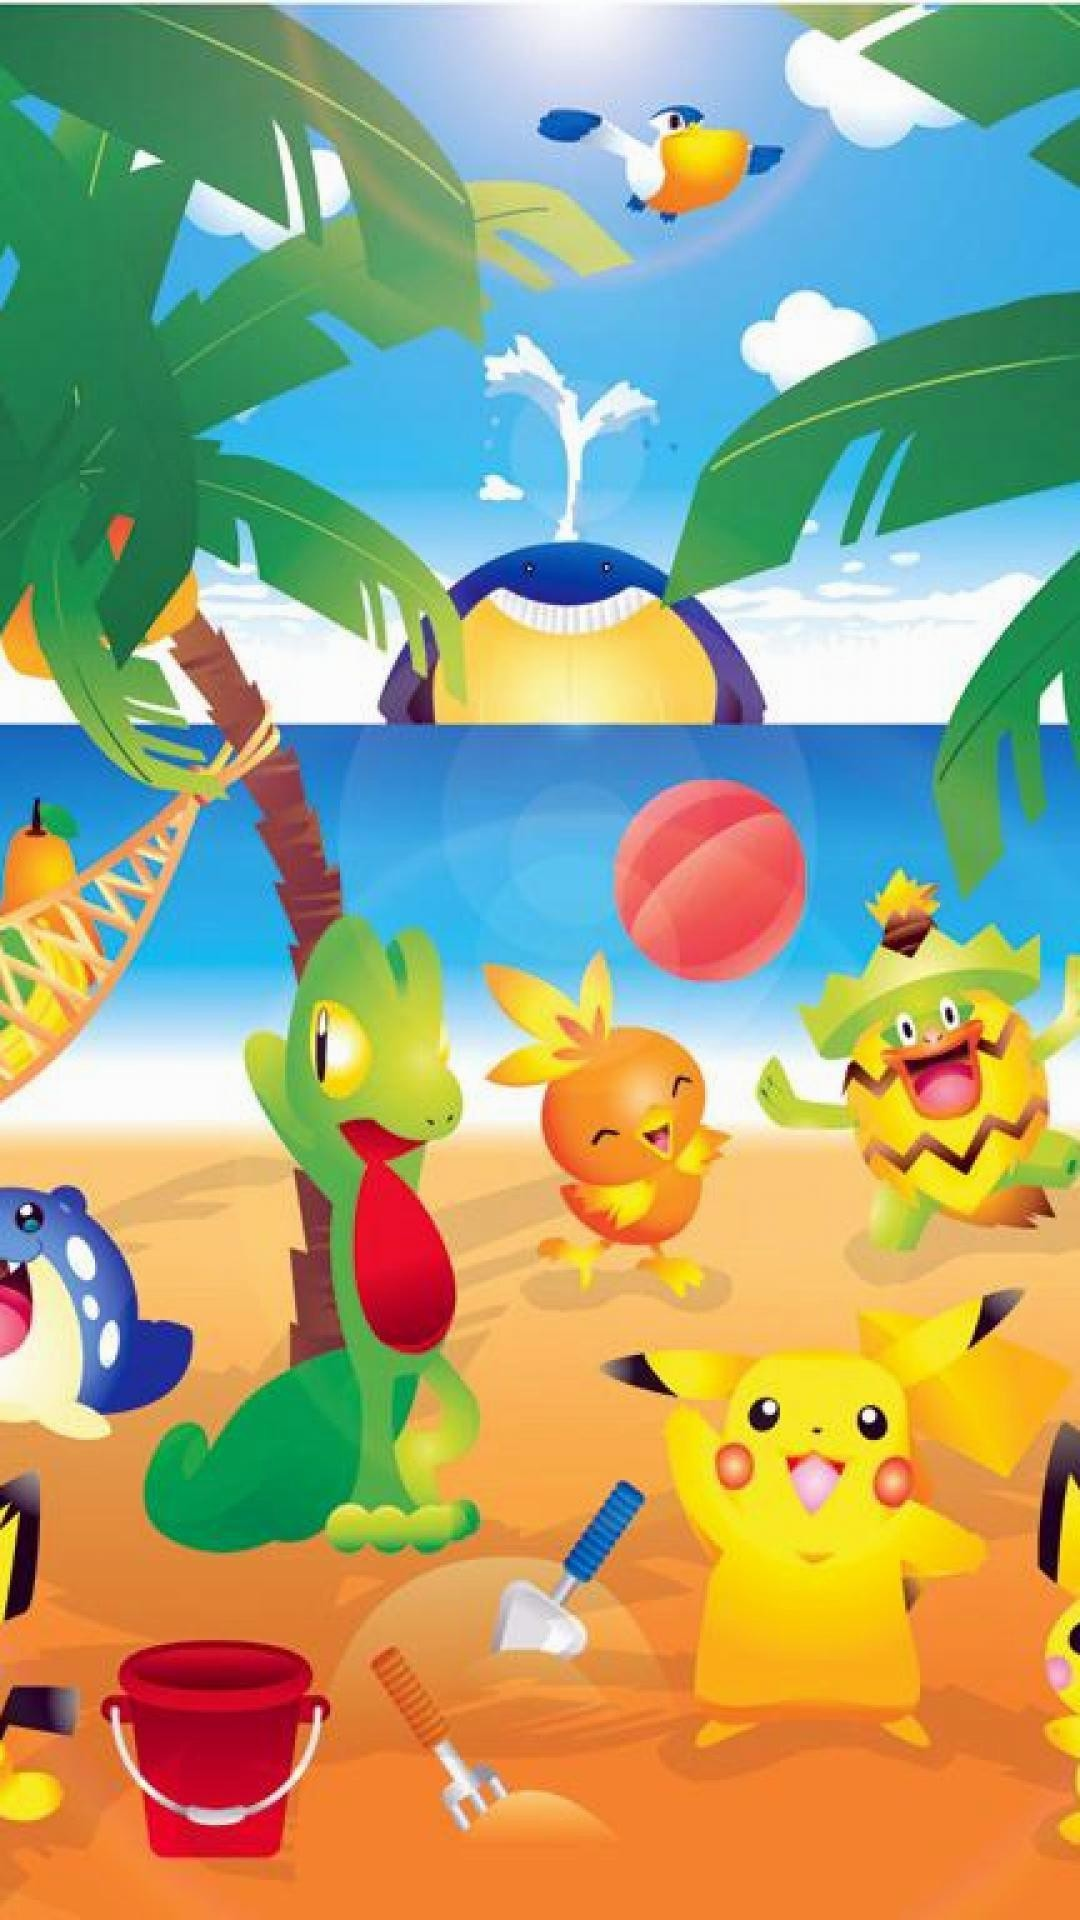 Games-Free-Pokemon-iPhone-Wallpapers